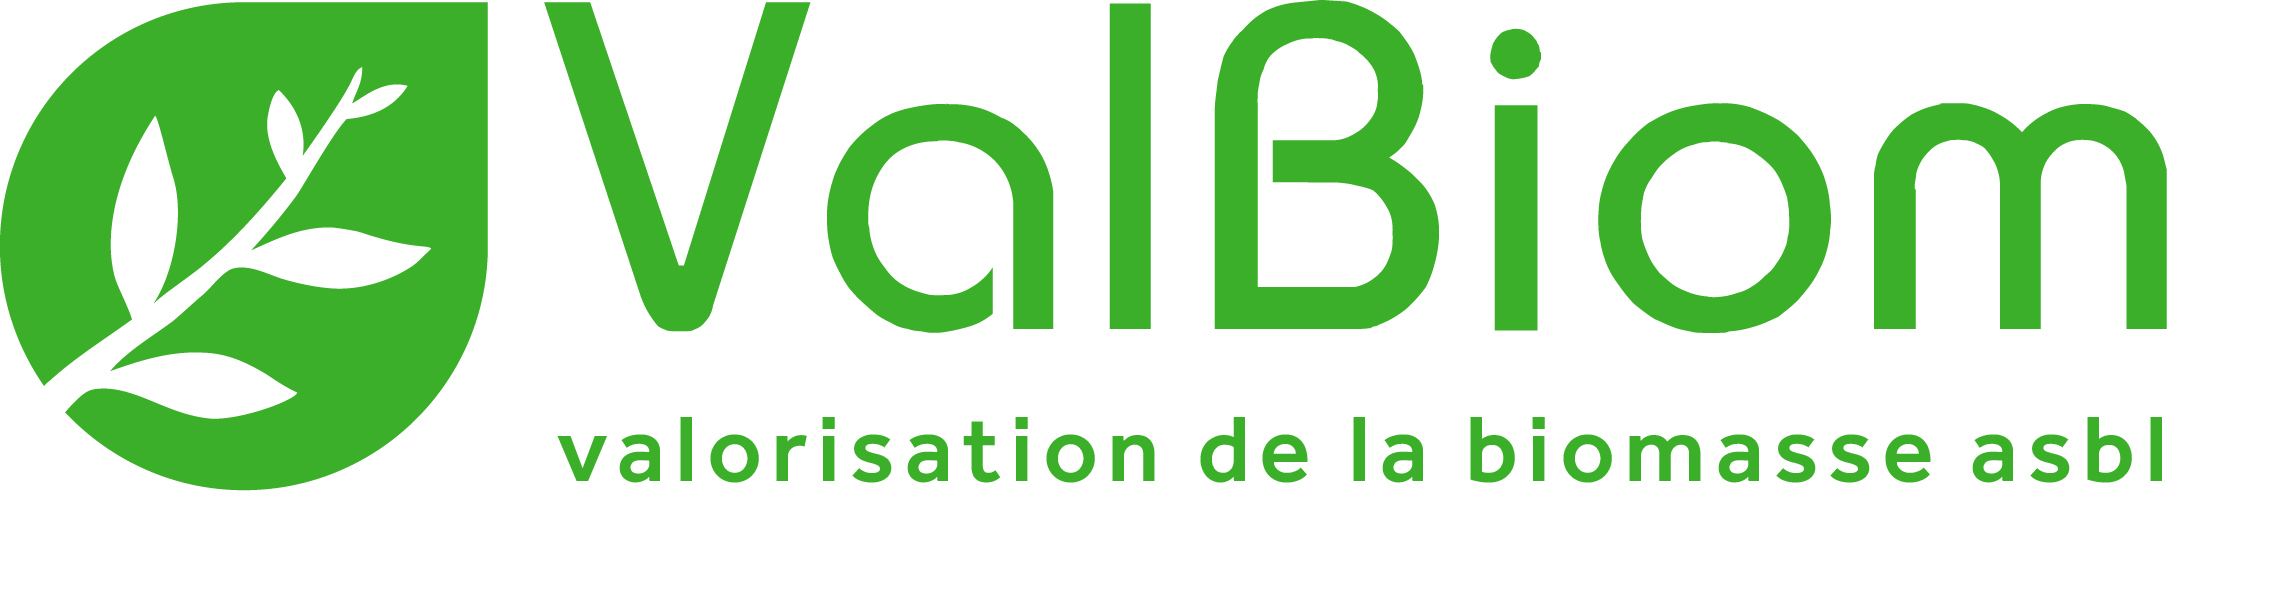 Logo ValBiom